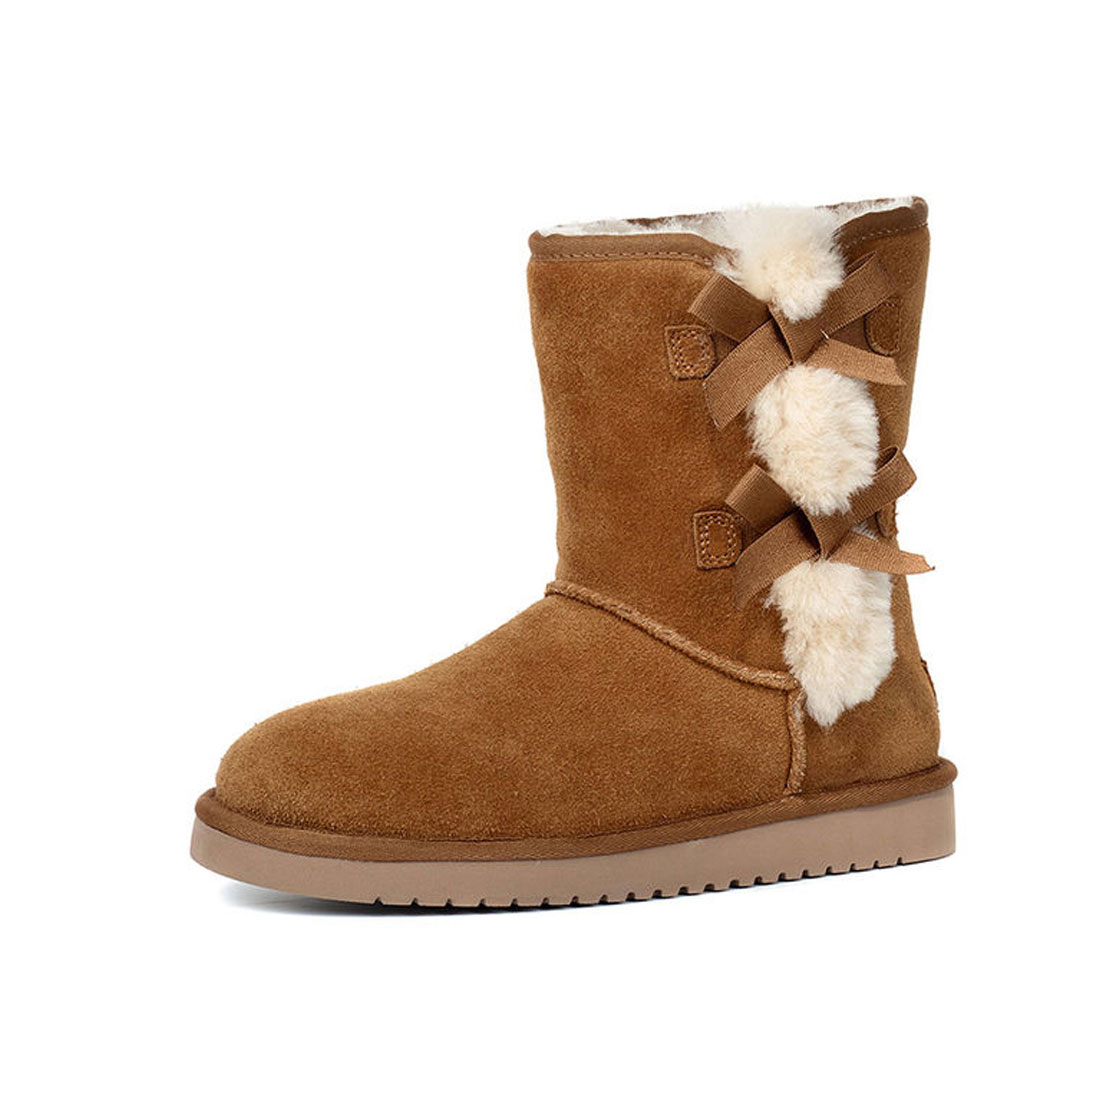 b8f20b03434 new style women ankle snow boots warm ladies winter shoes platform shoes  HS8195. Beige Enchanting Morgex shearling boots – Loro Piana ...